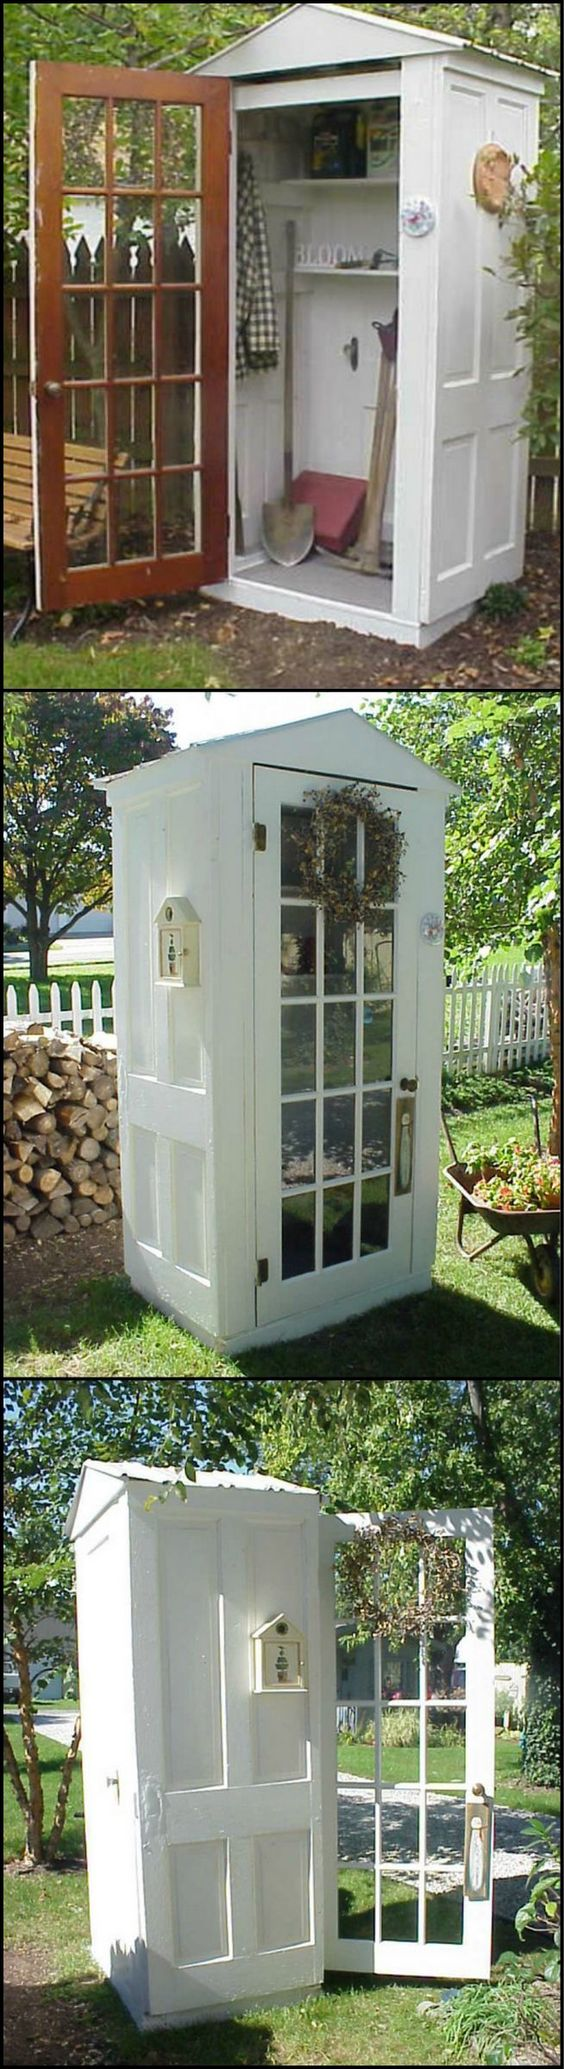 A Tool Shed Made from Repurposed Doors. See more details